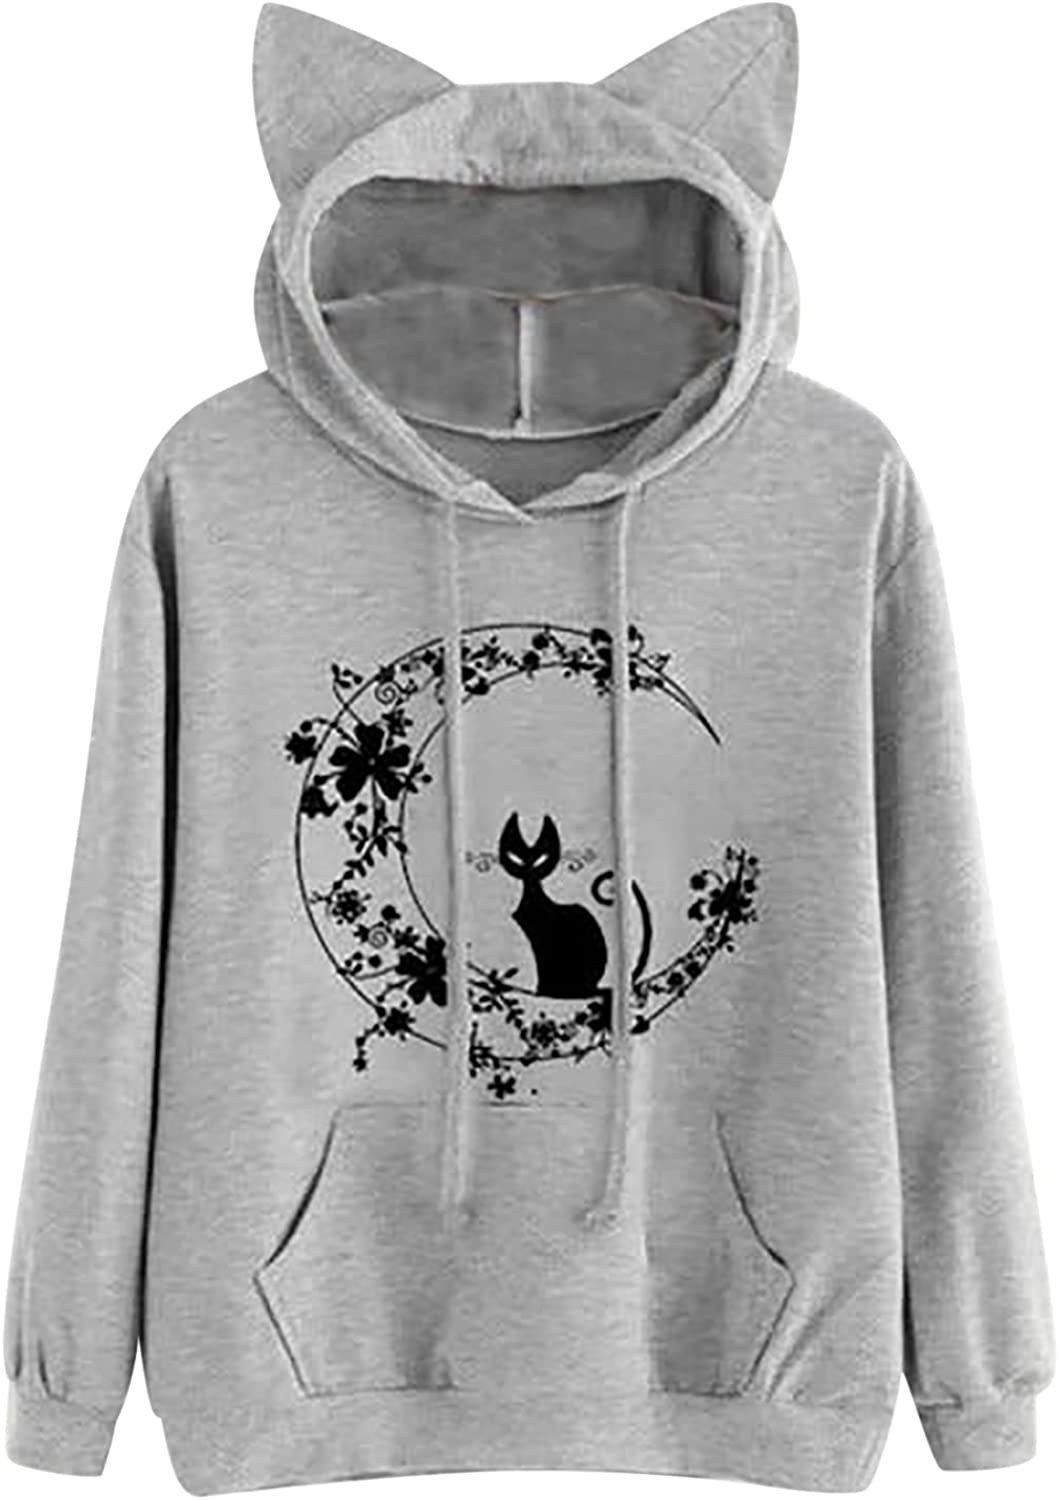 Cute Hoodies for Women Funny Cat Print Pullover Stitching Cute Ear Blouse Casual Loose Long Sleeve Sweatshirt